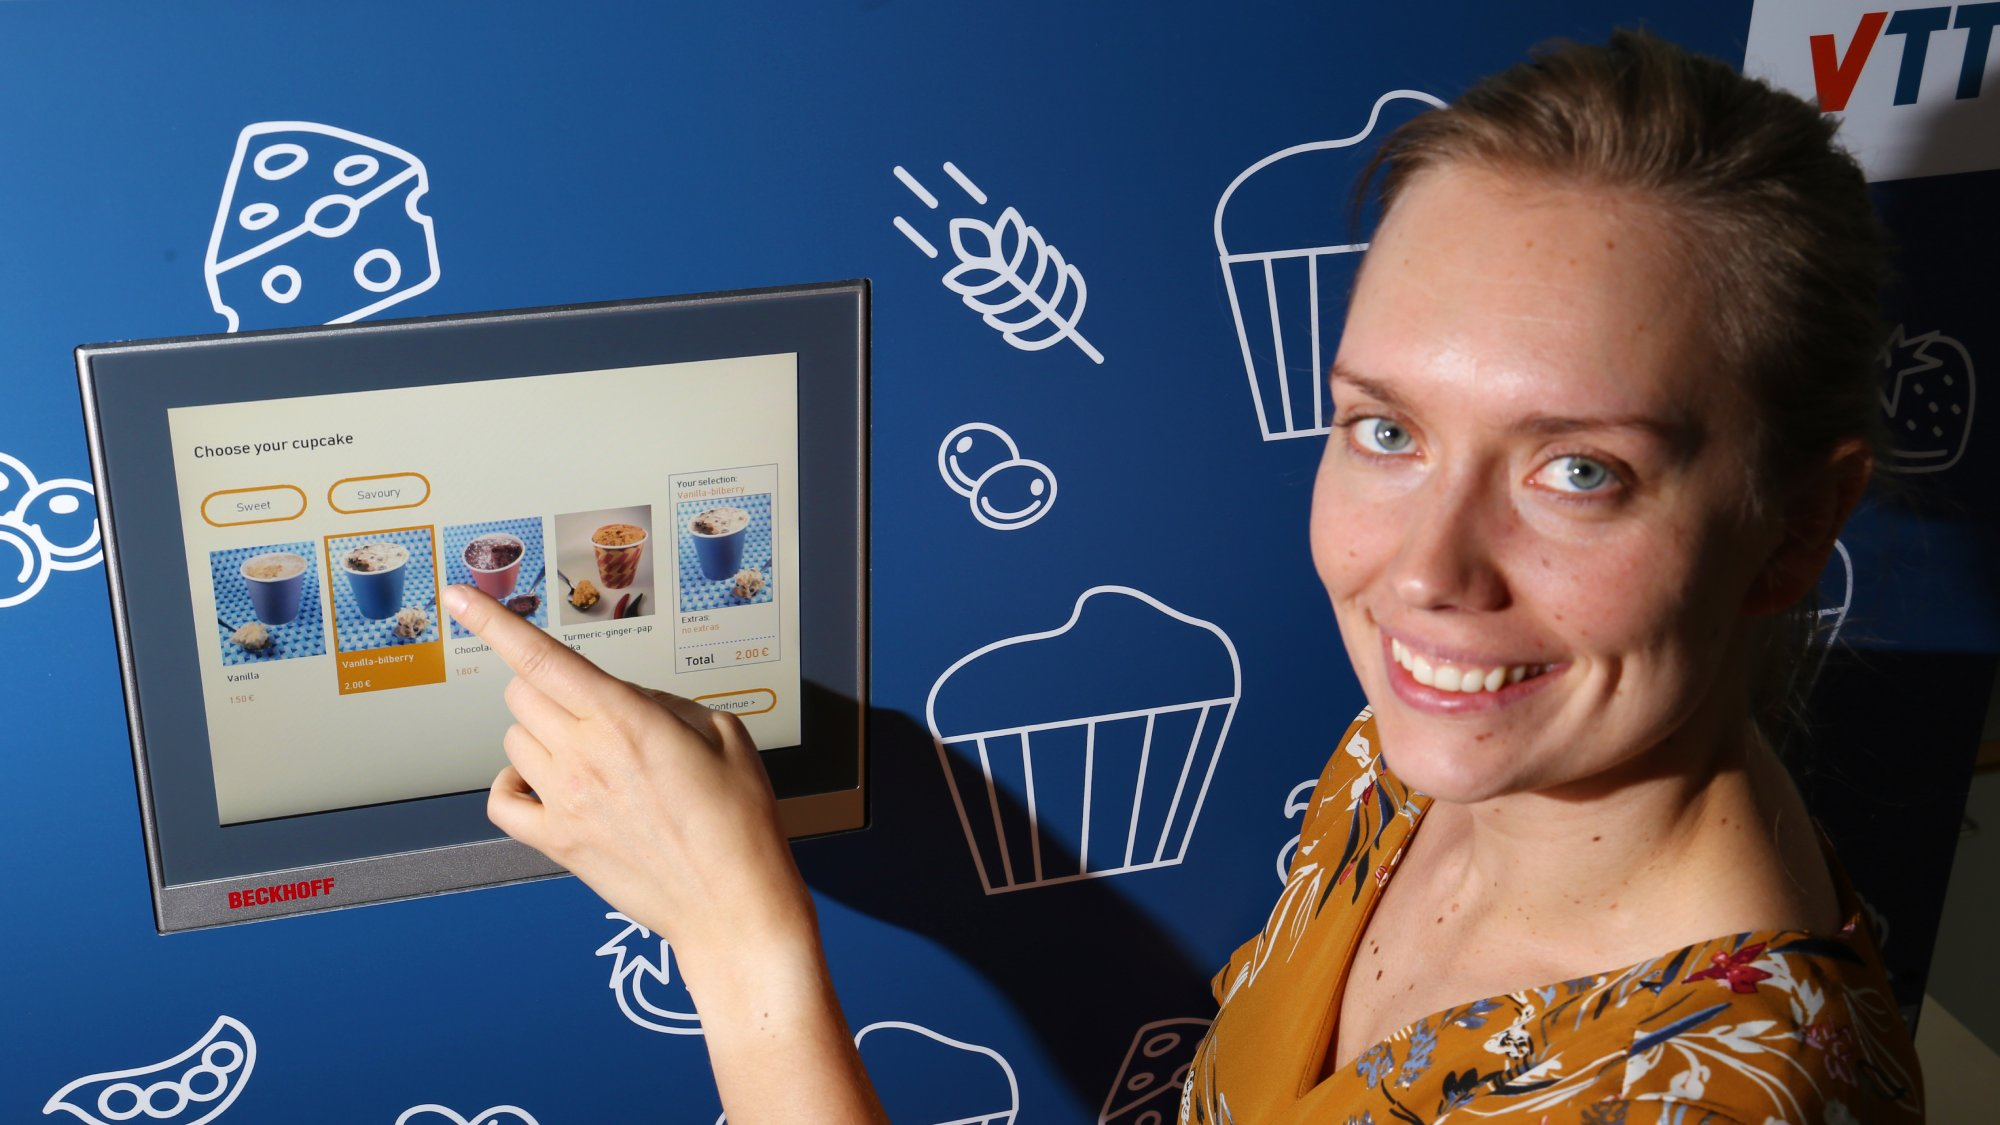 woman pointing a vending machine's touchscreen